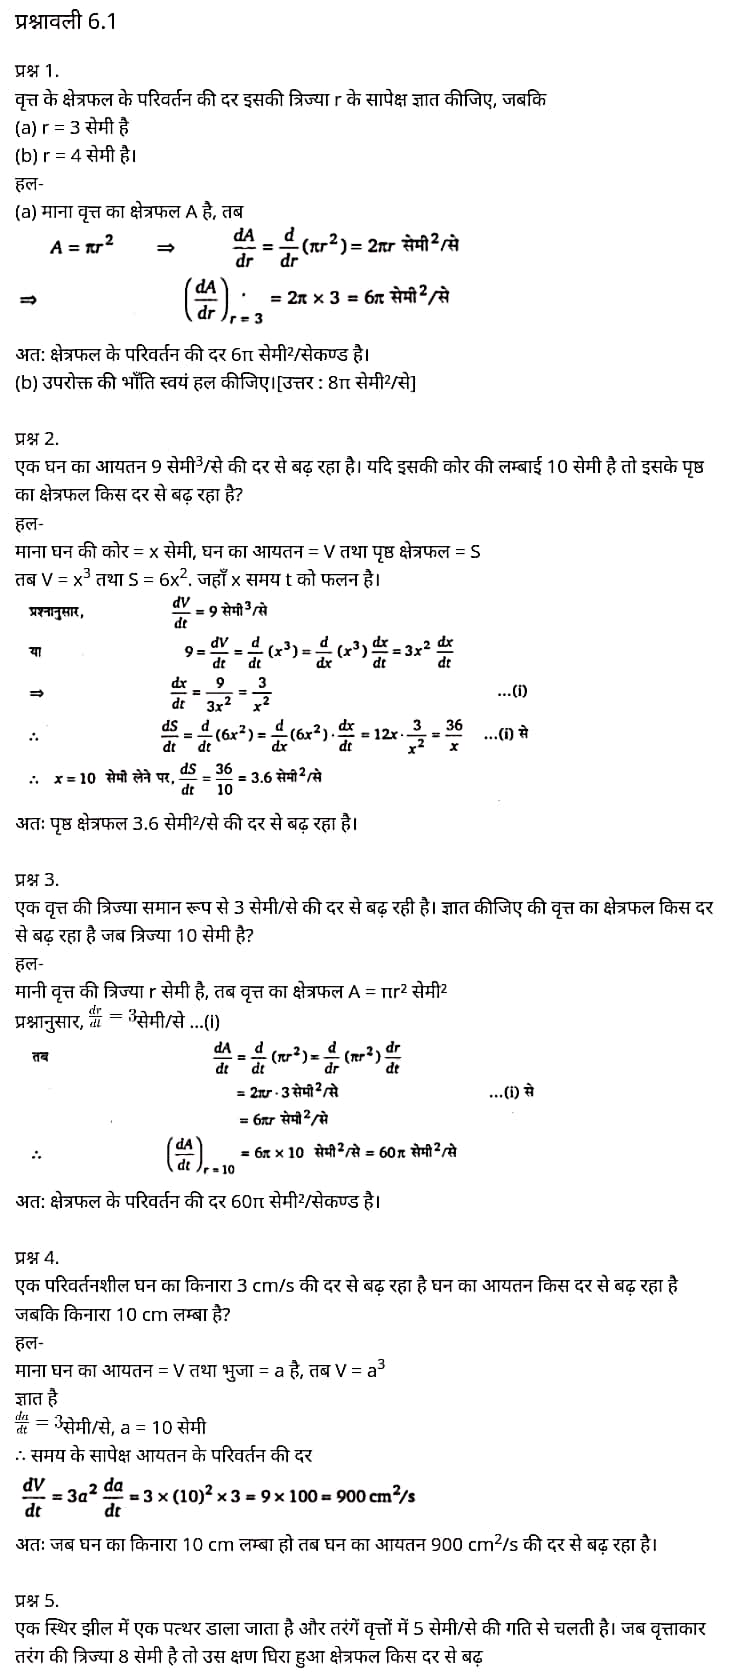 UP Board Solutions for Class 12 Maths Chapter 6 Application of Derivatives